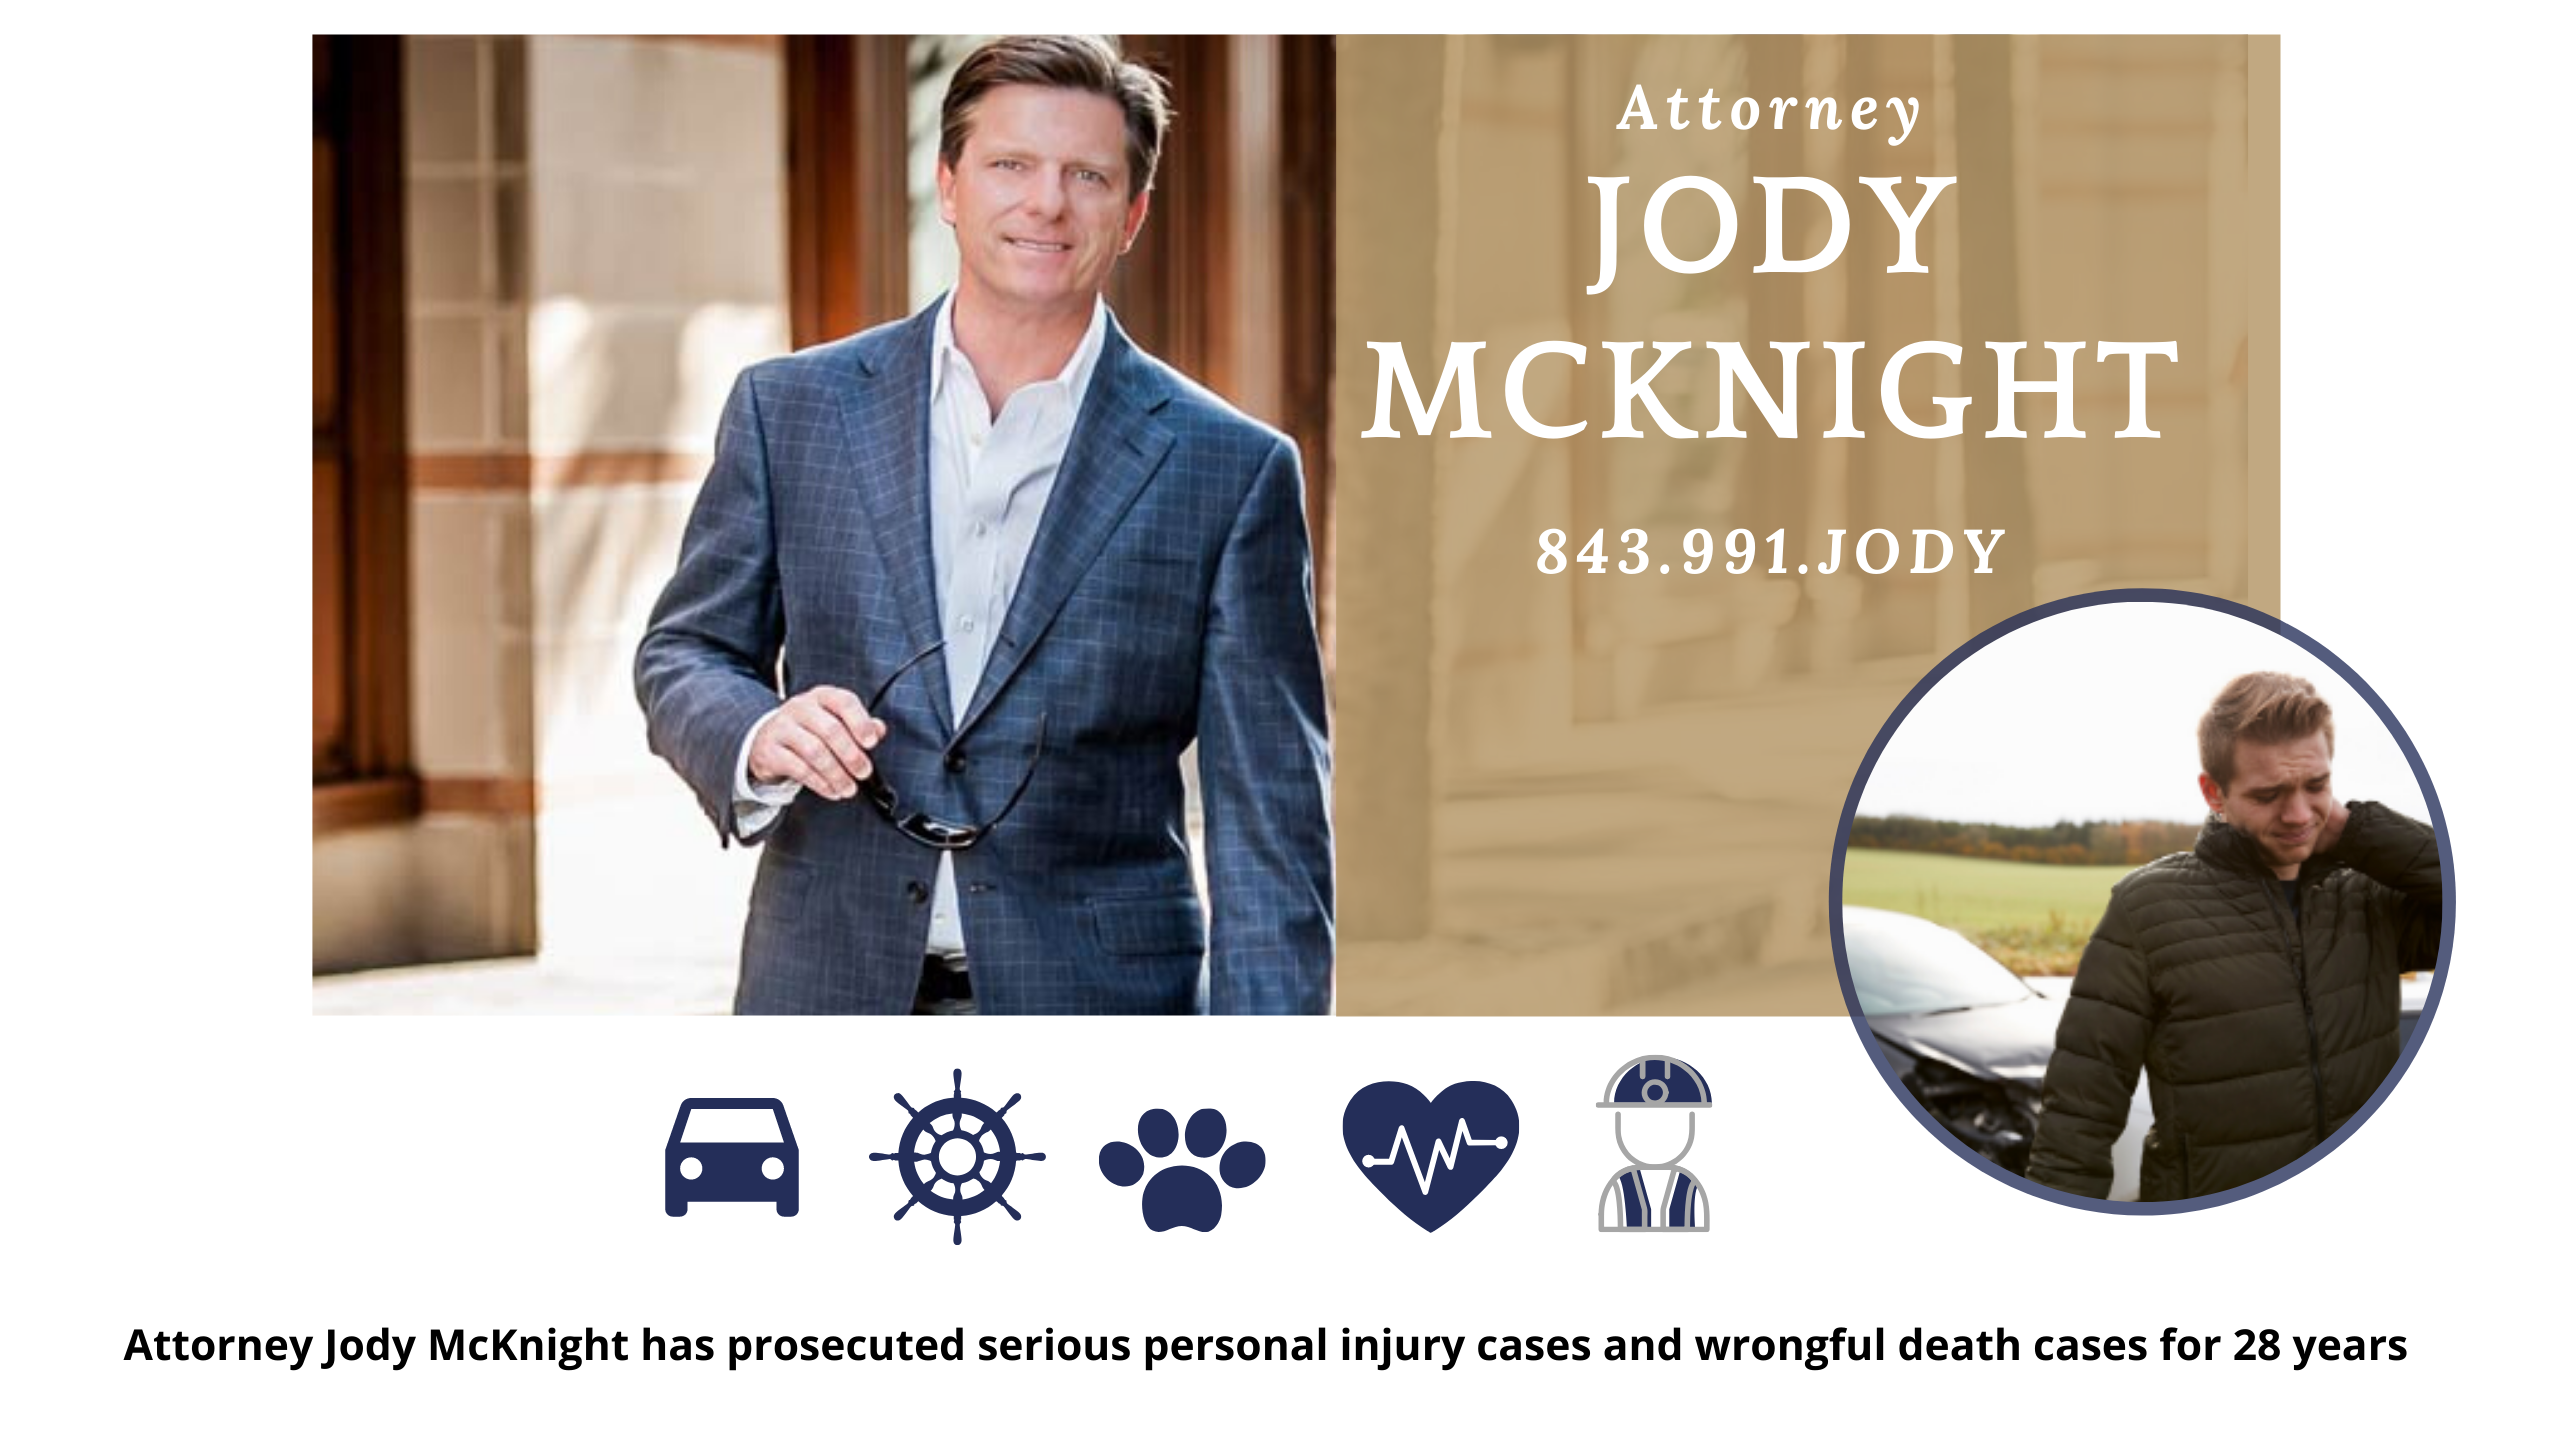 Jody McKnight - Personal Injury Law Firm